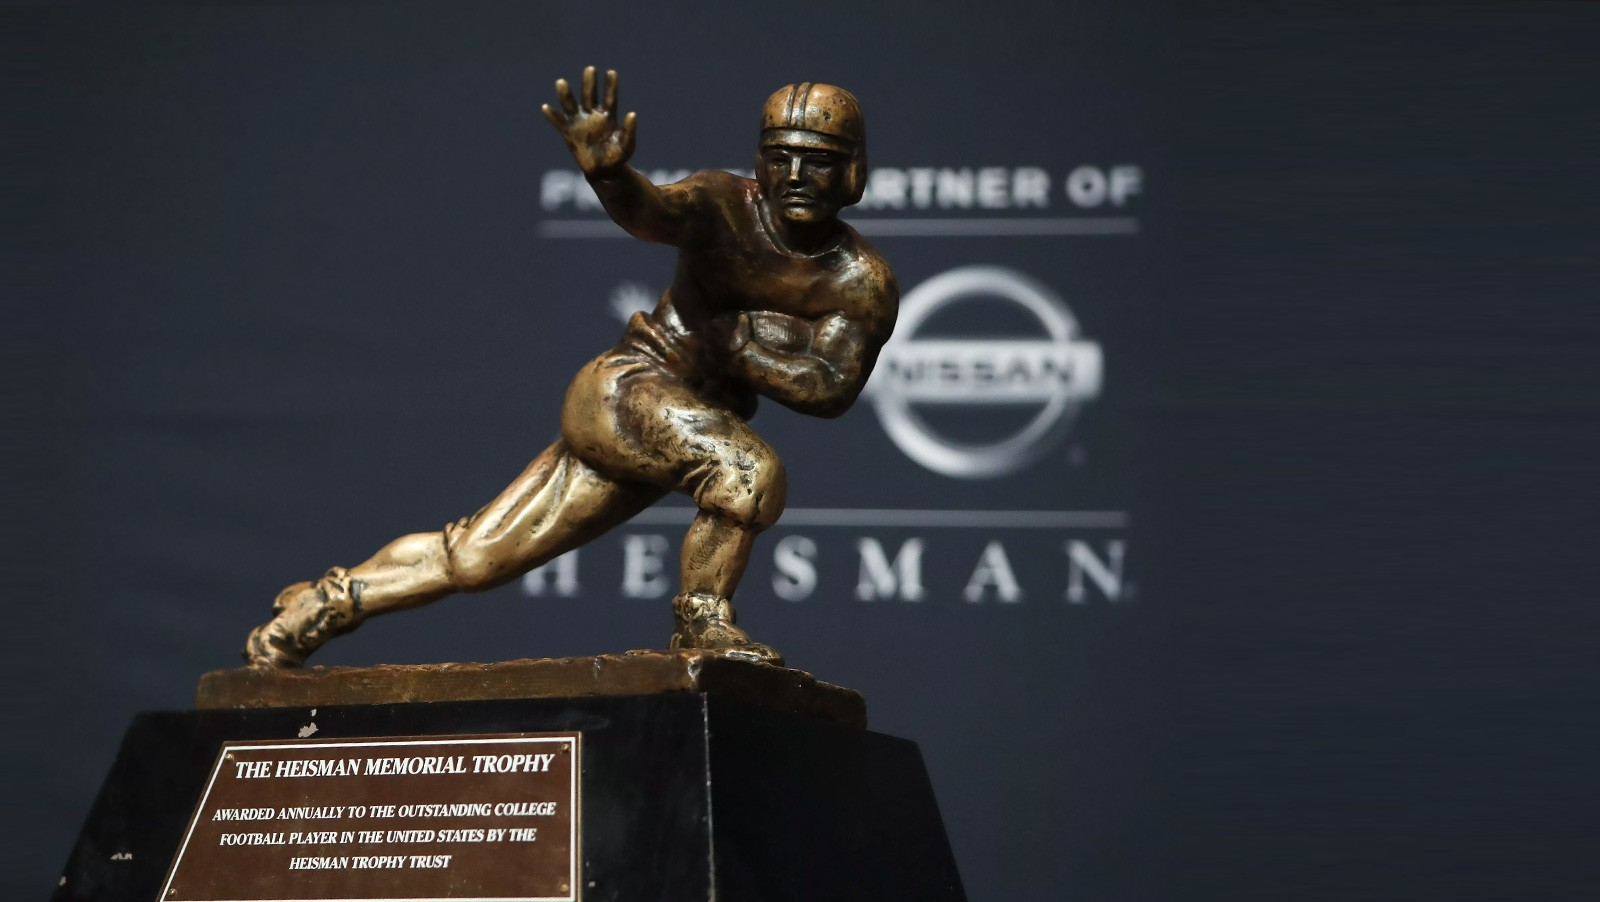 Mayfield leads Barkley, Adams on updated Heisman Trophy odds